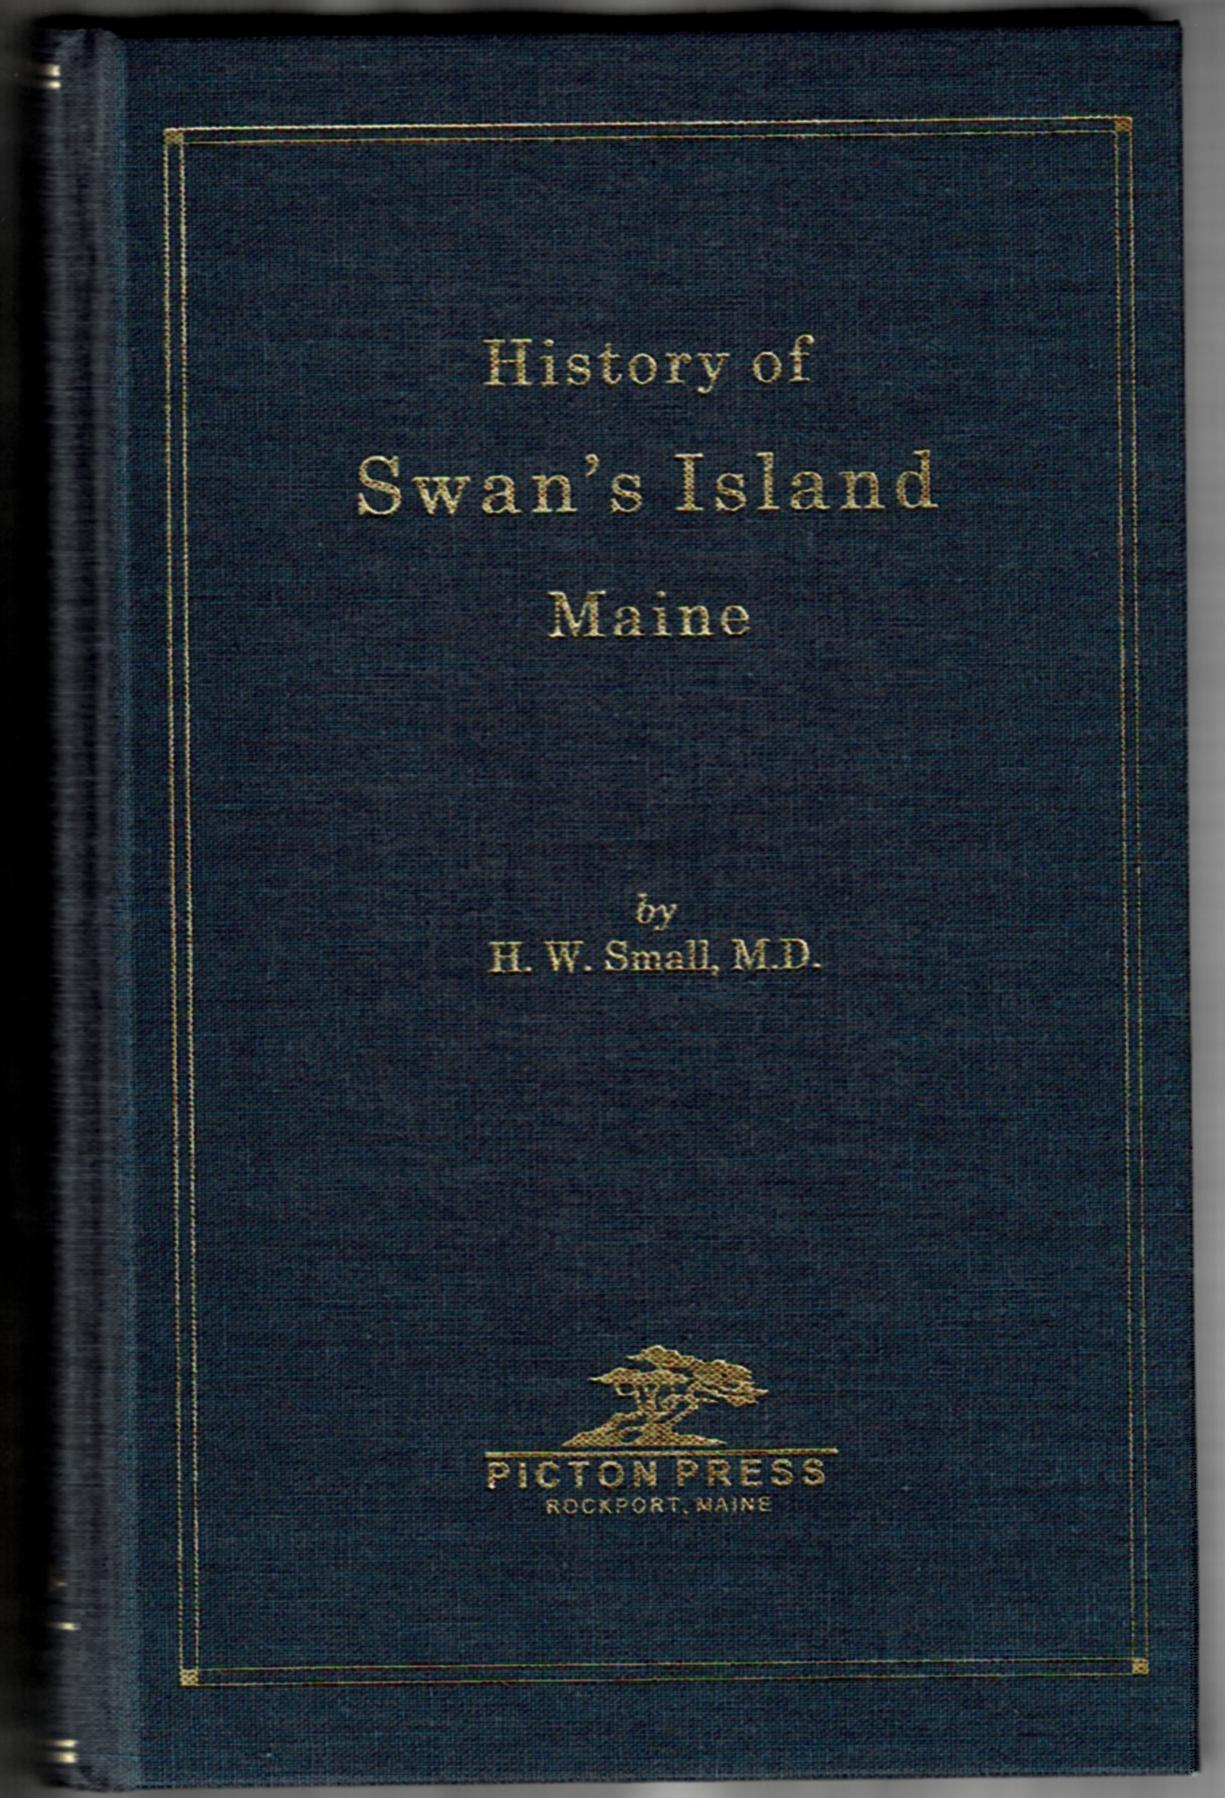 Image for History of Swan's Island Maine